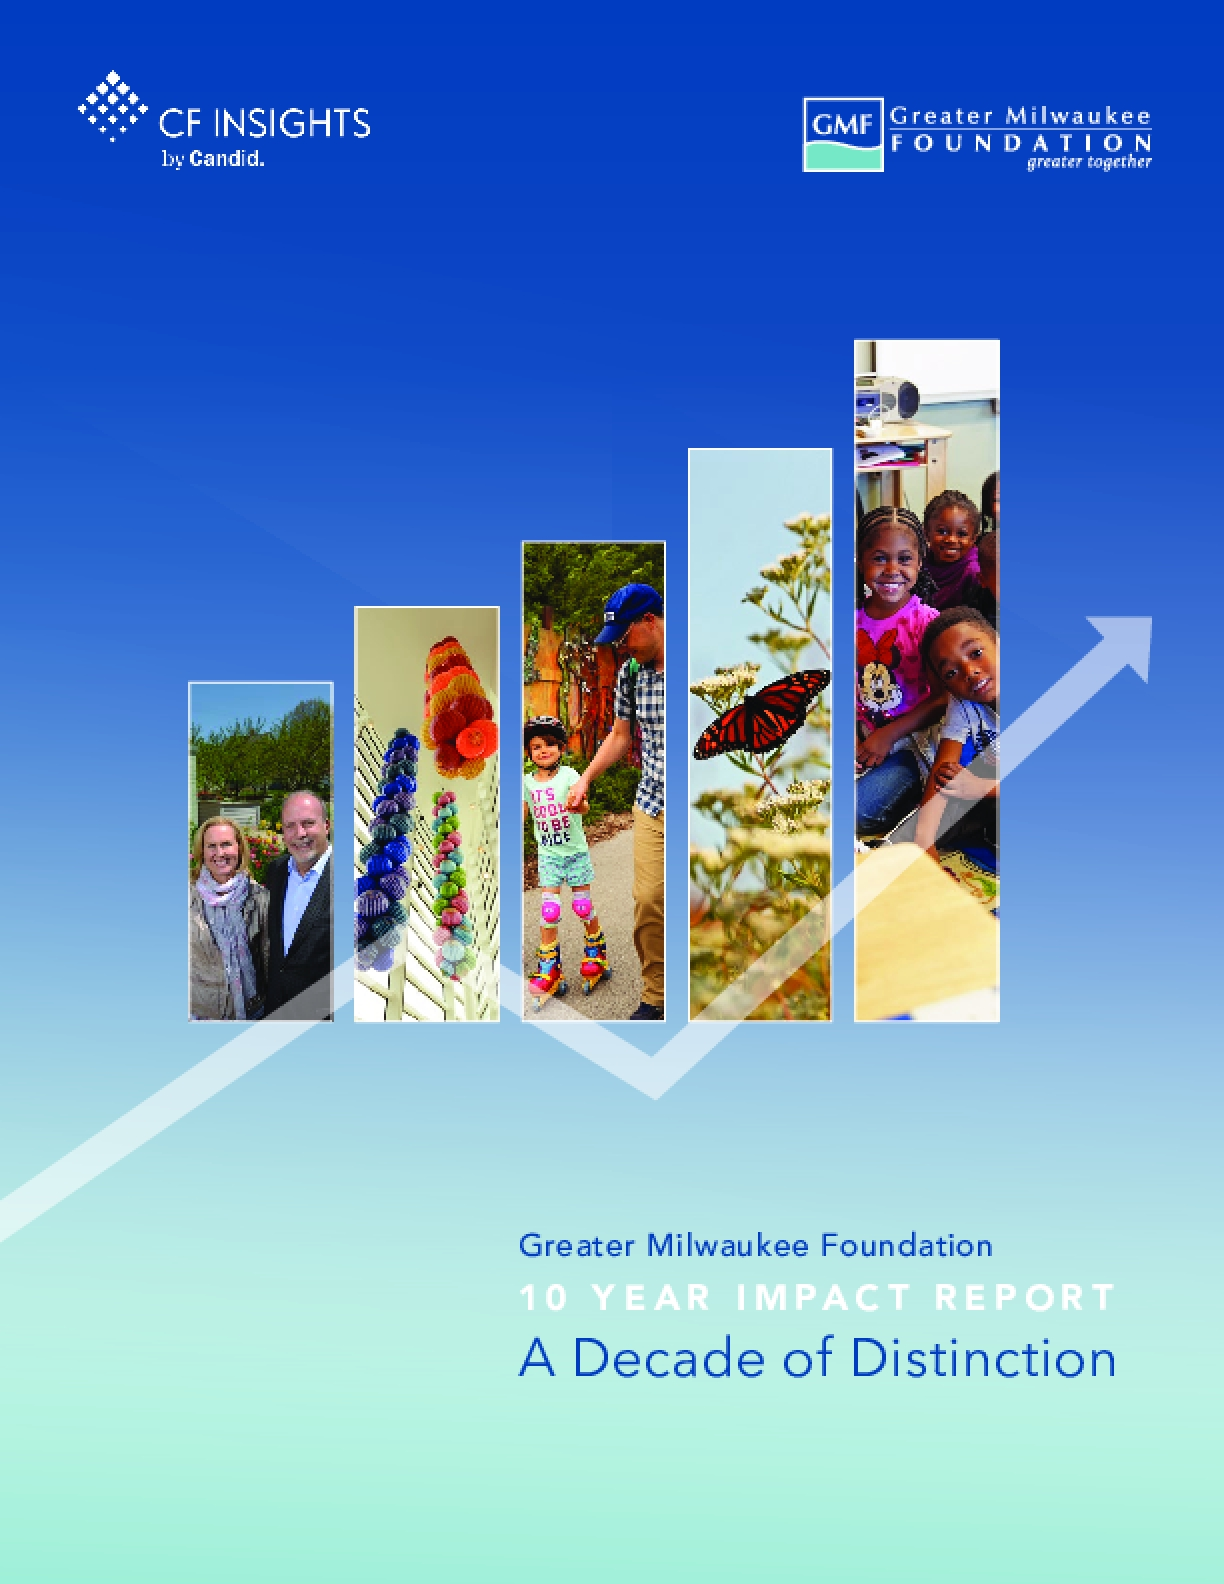 Greater Milwaukee Foundation 10 Year Impact Report: A Decade of Distinction